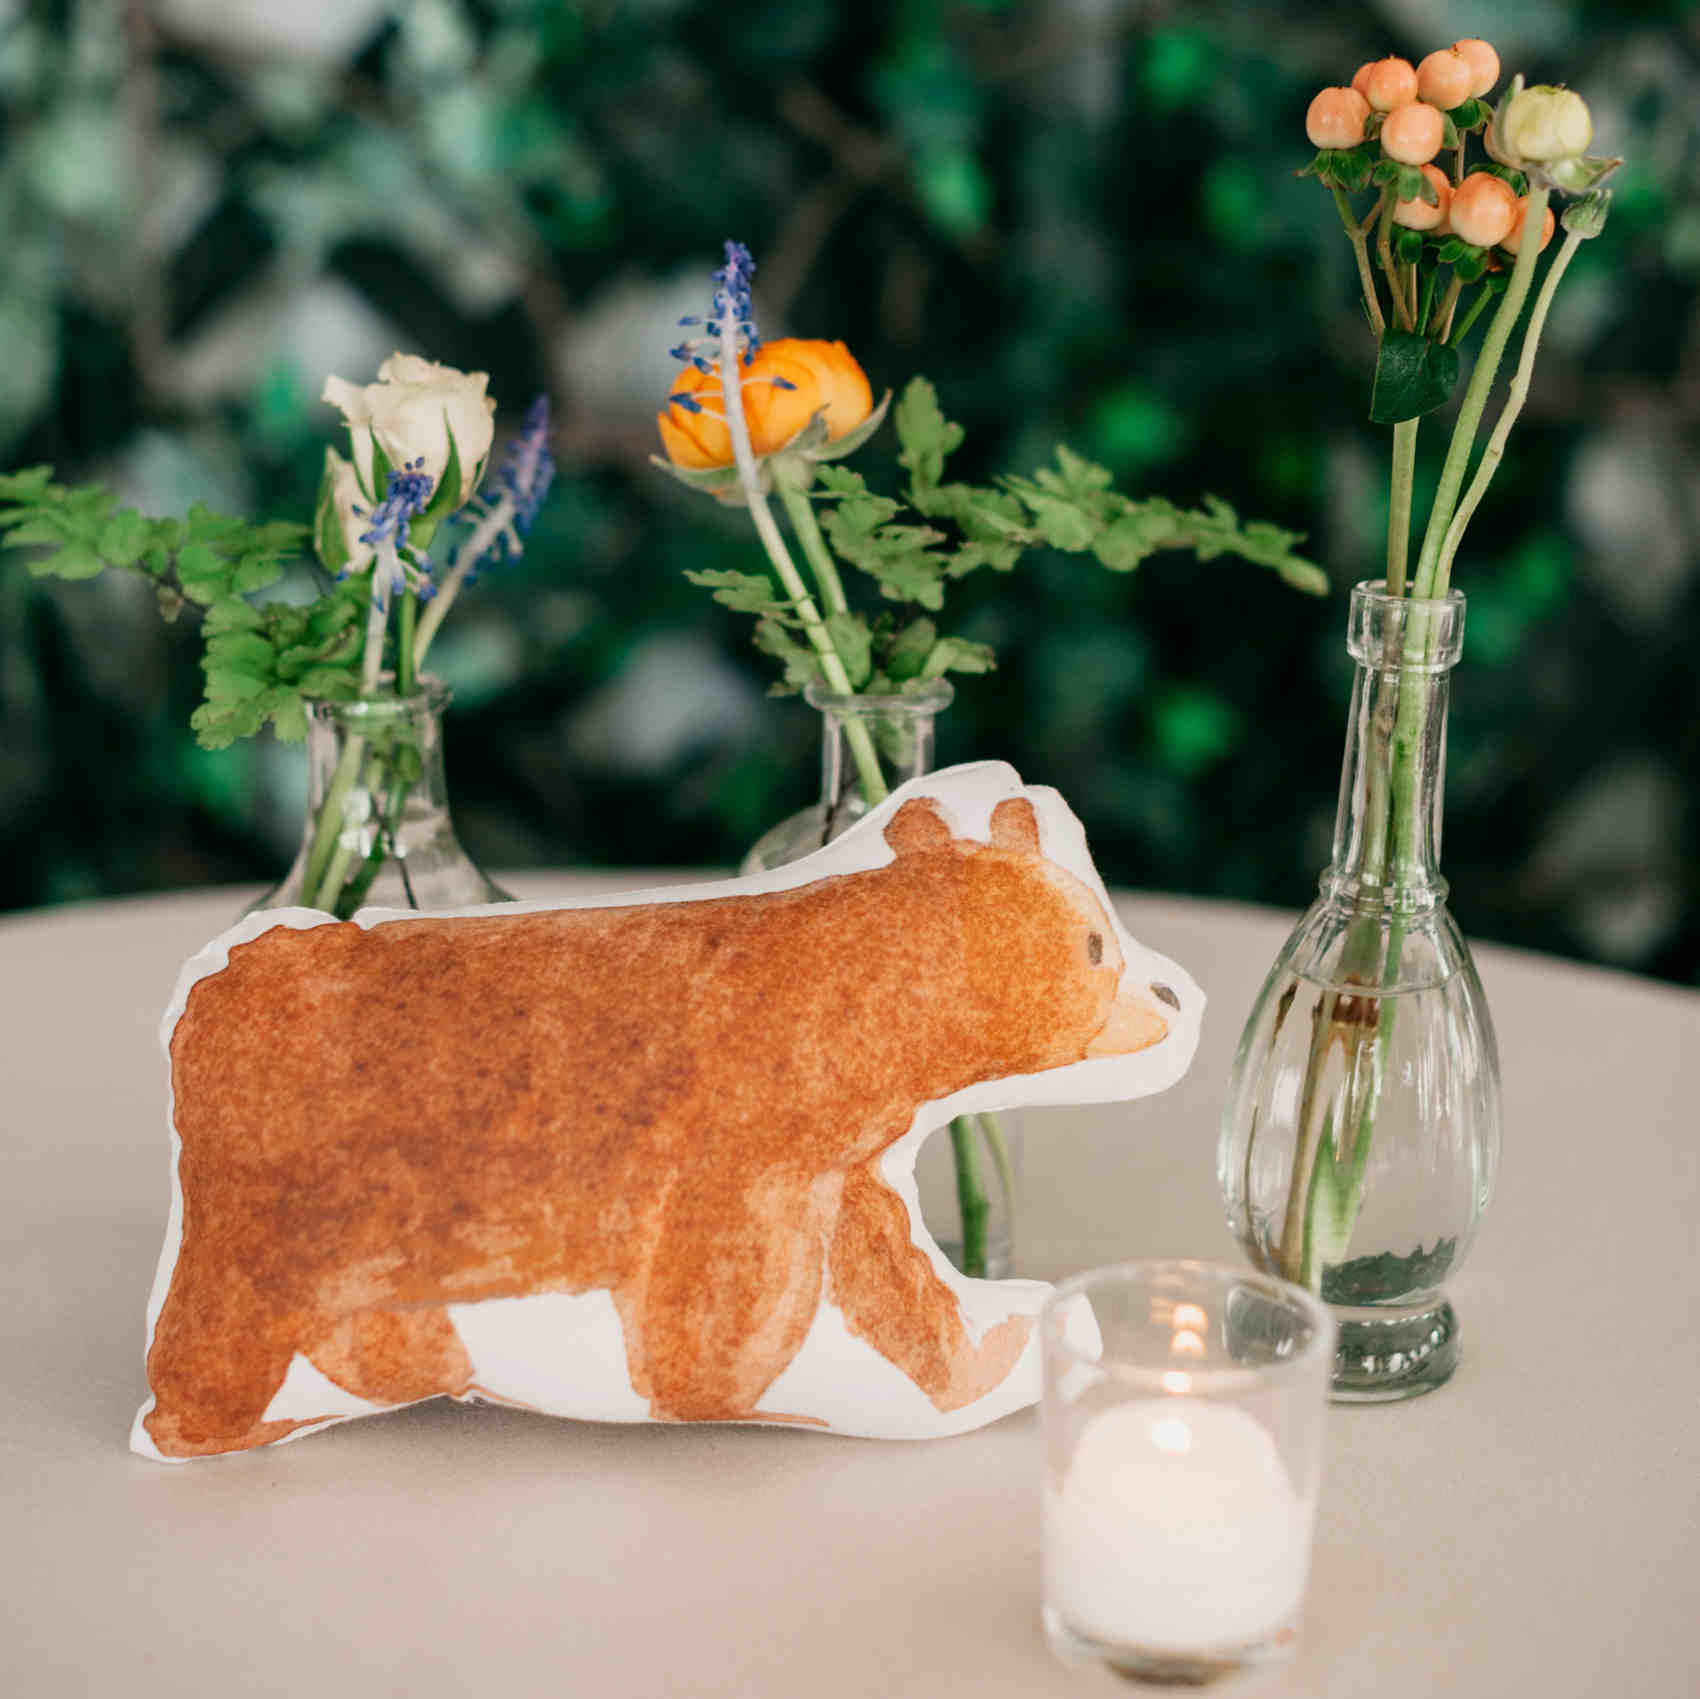 Enter the Forest: It's a Whimsical Woodland Baby Shower